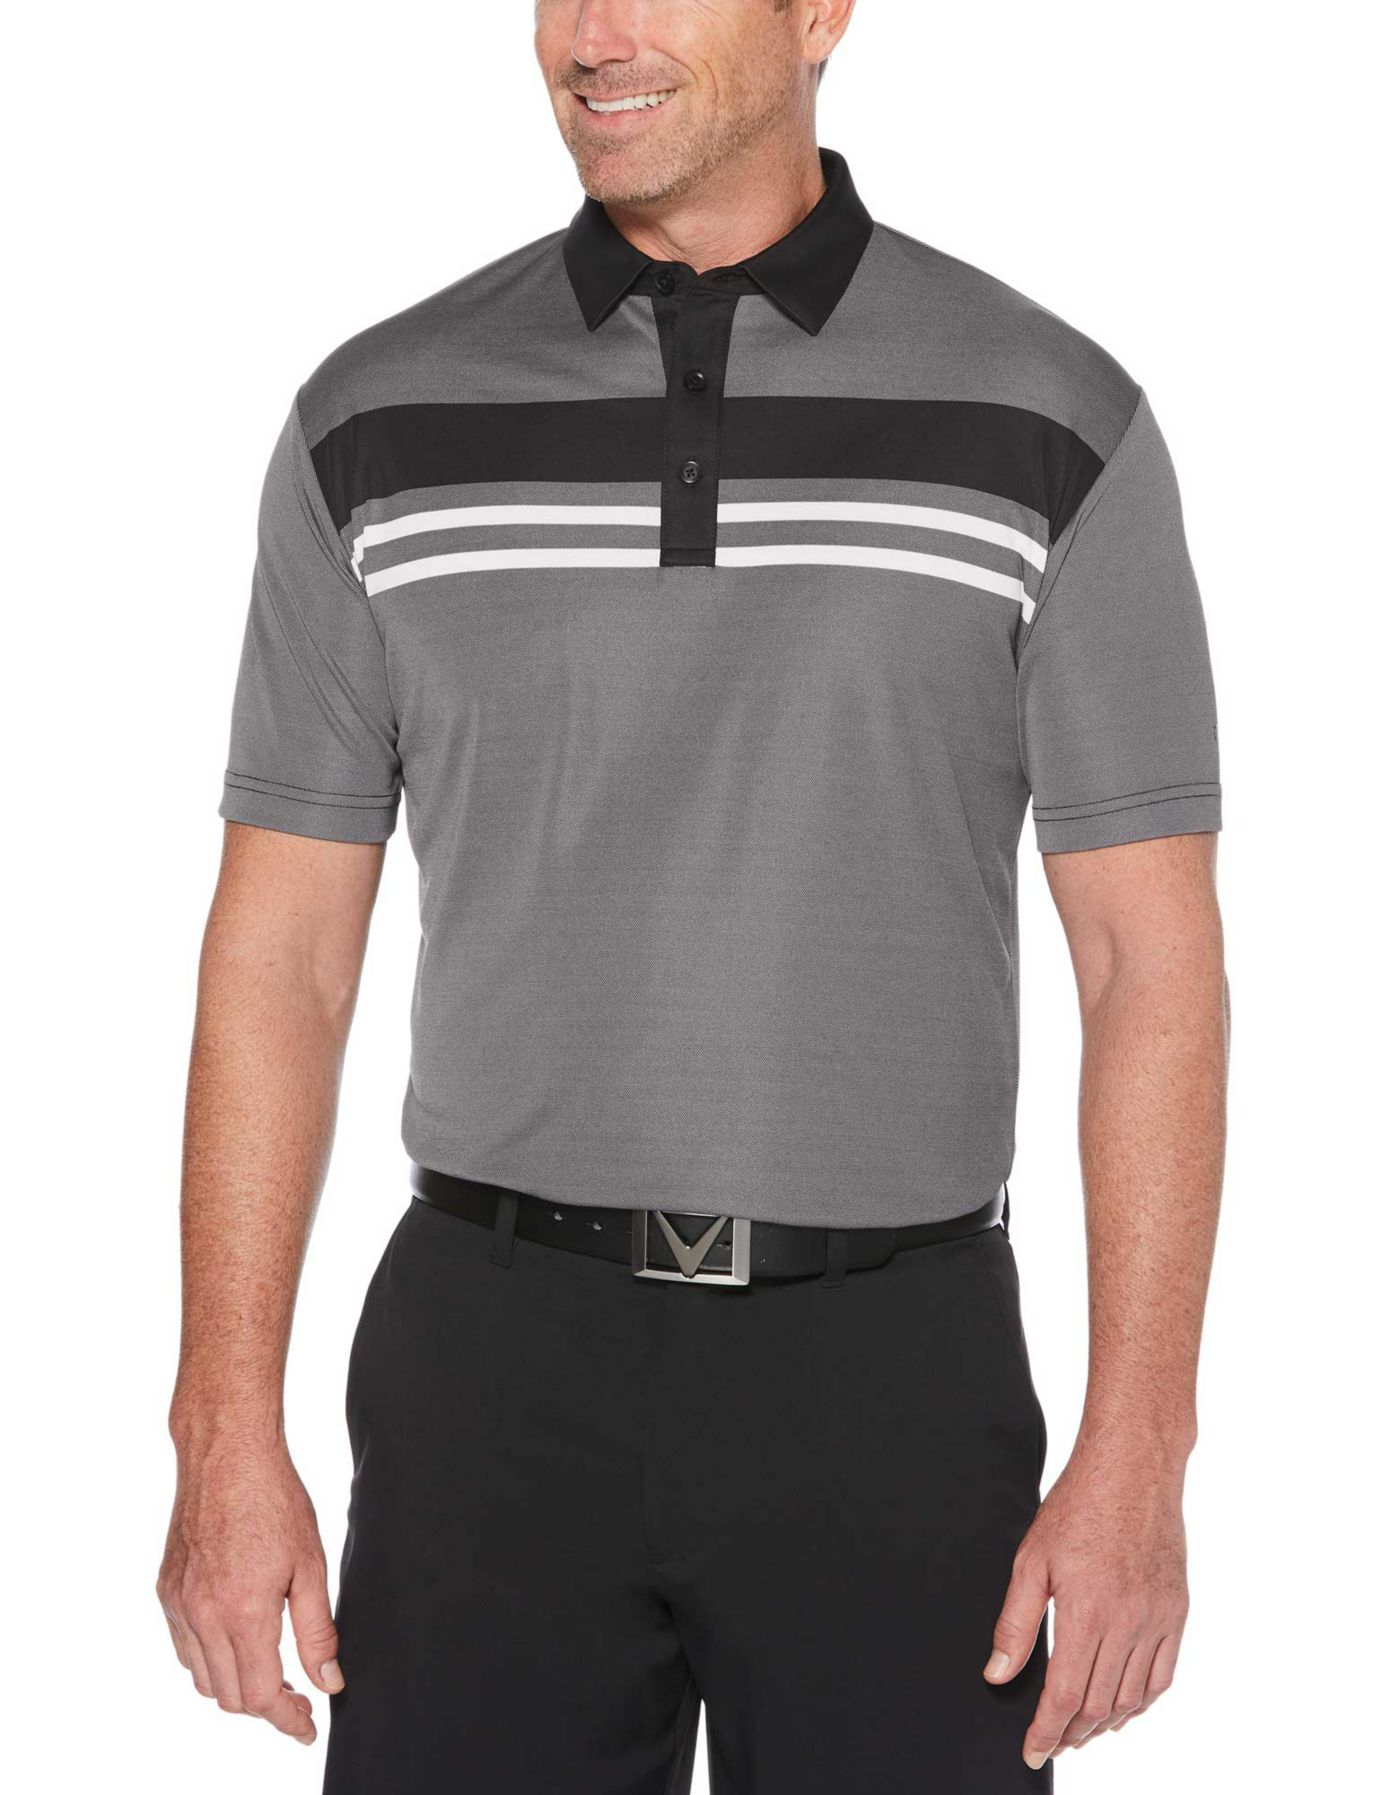 Callaway Men's Birdseye Block Golf Polo